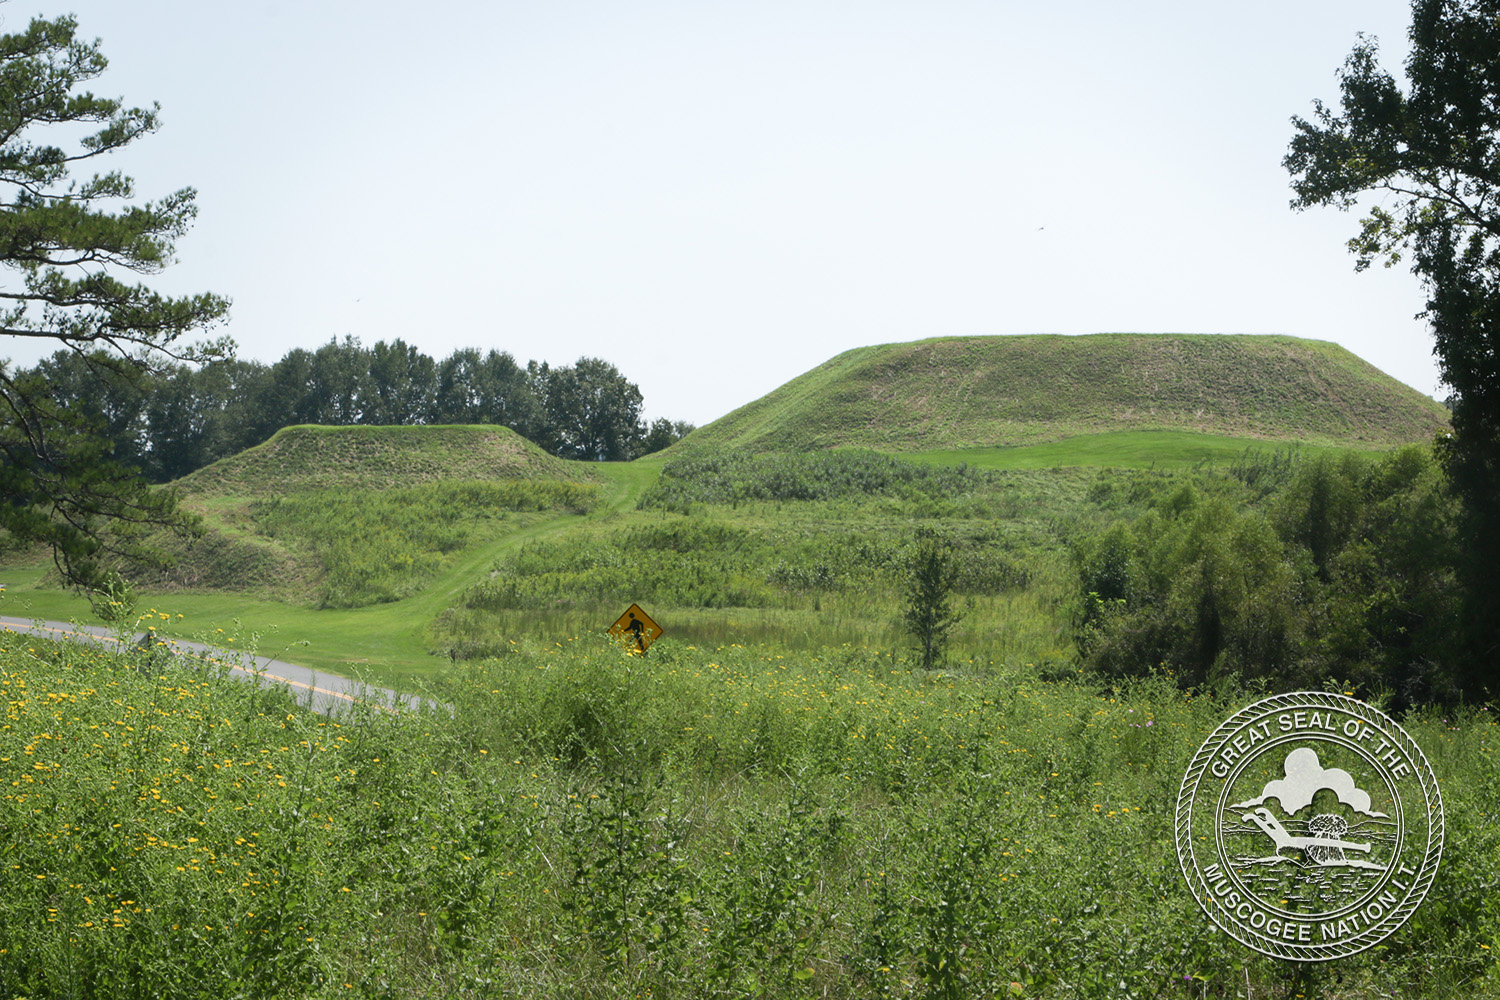 Ocmulgee National Monument working toward expansion